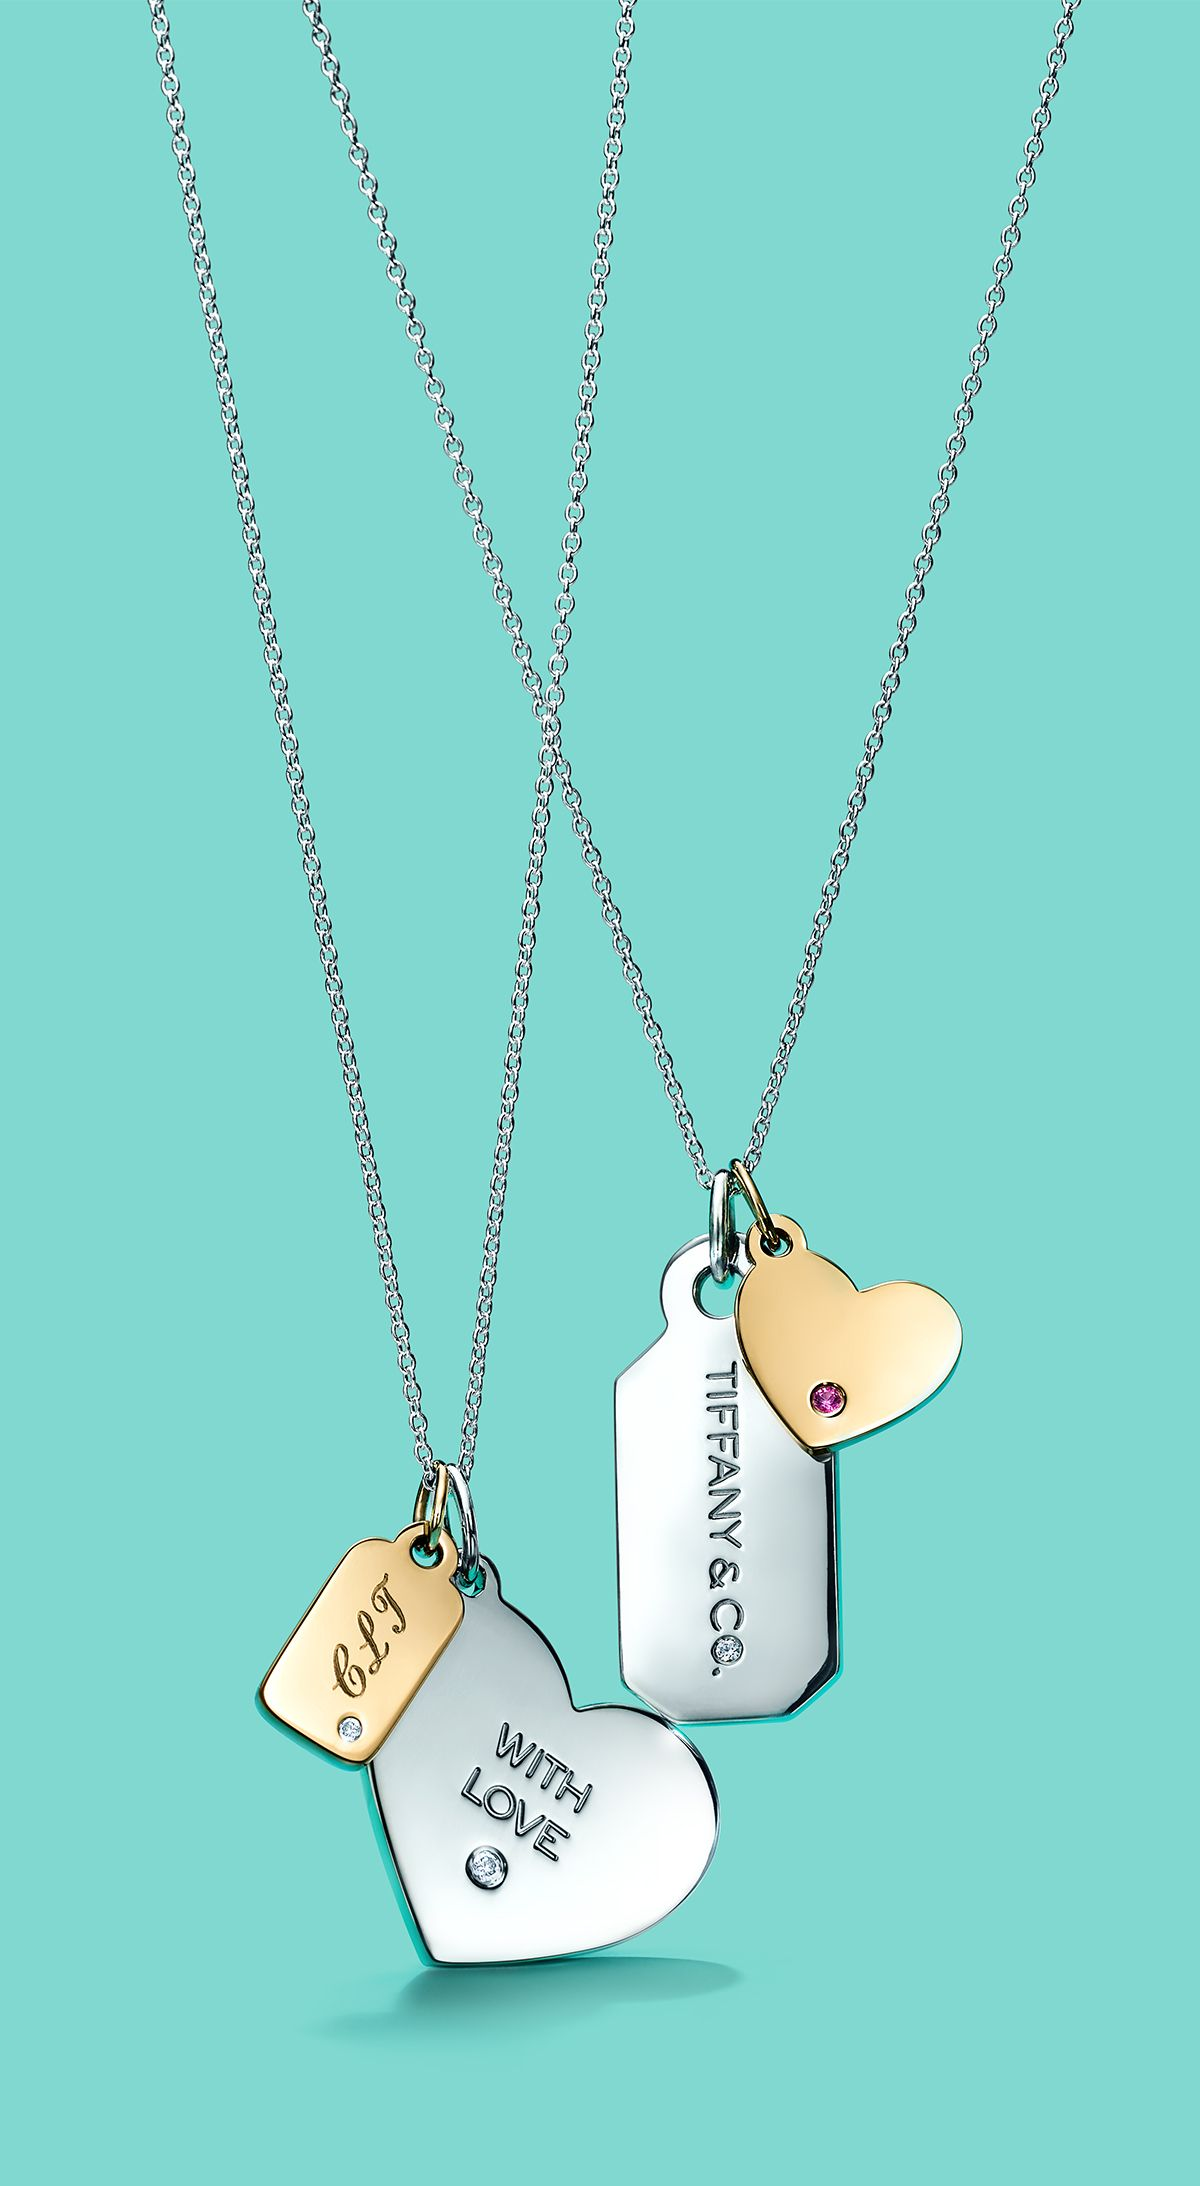 0ae3499a841d Customize a thoughtful new Tiffany Charms tag they ll cherish forever. Tiffany  And Co